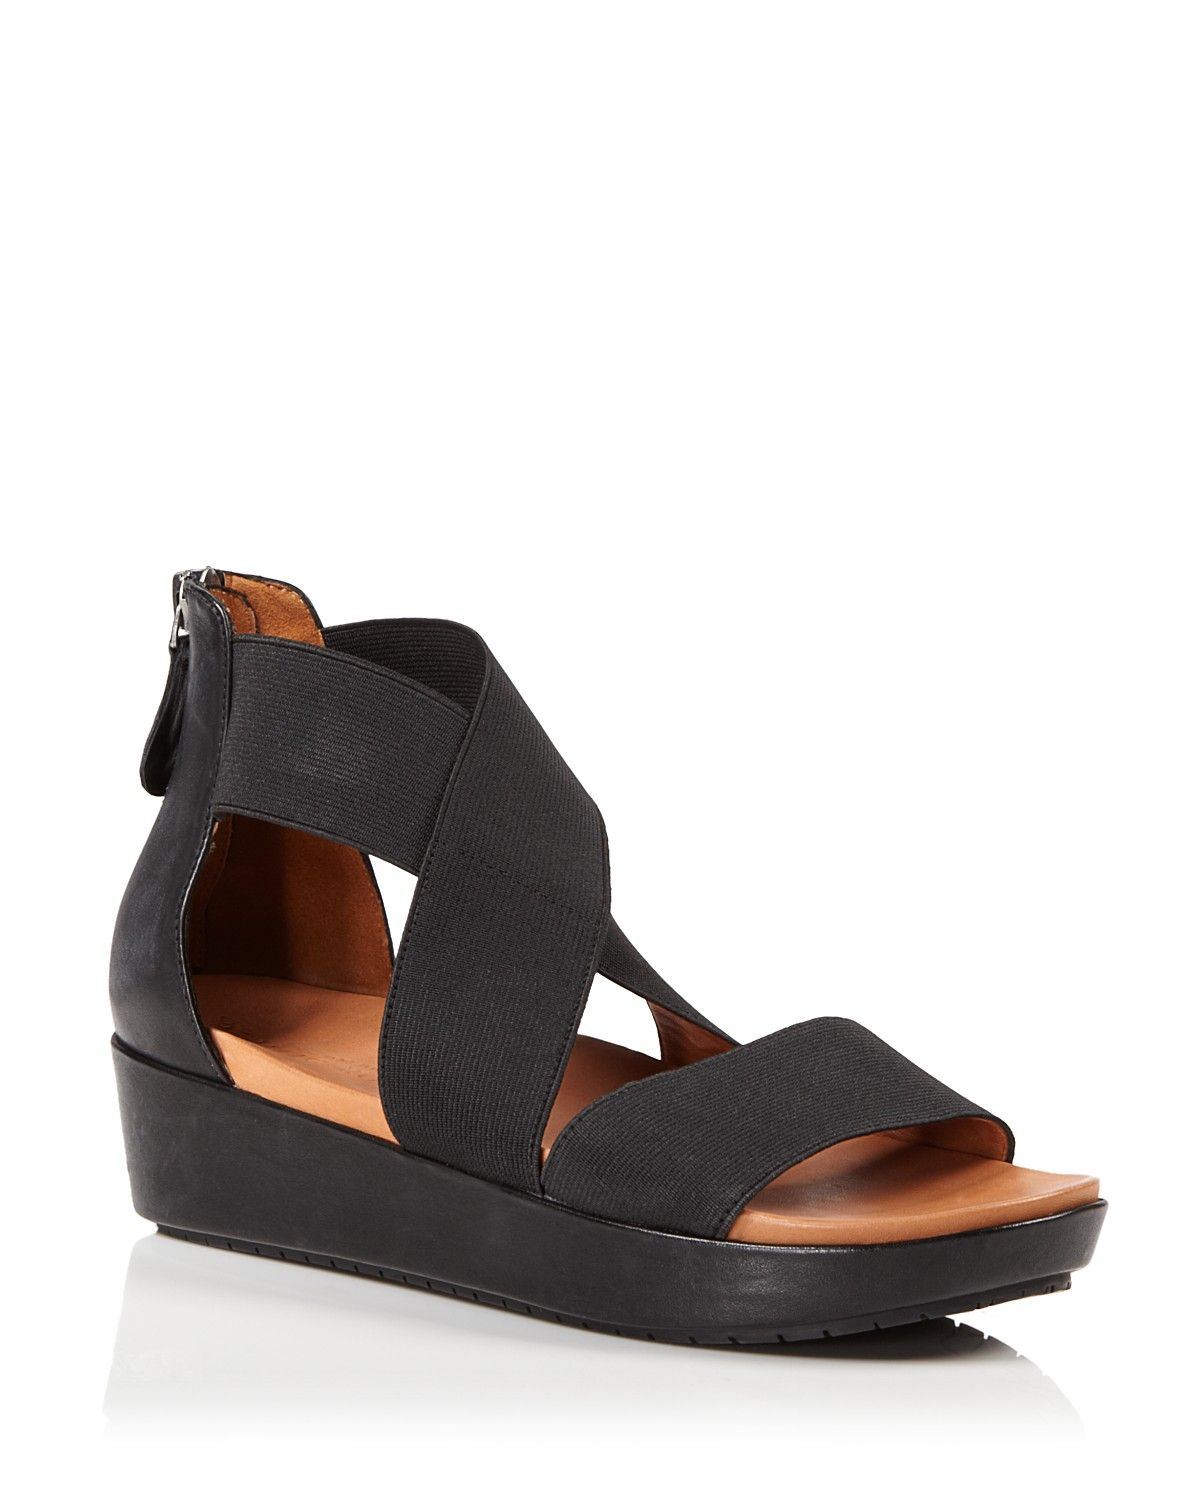 0ab7cd3deae Gentle Souls Platform Sandals - Josie